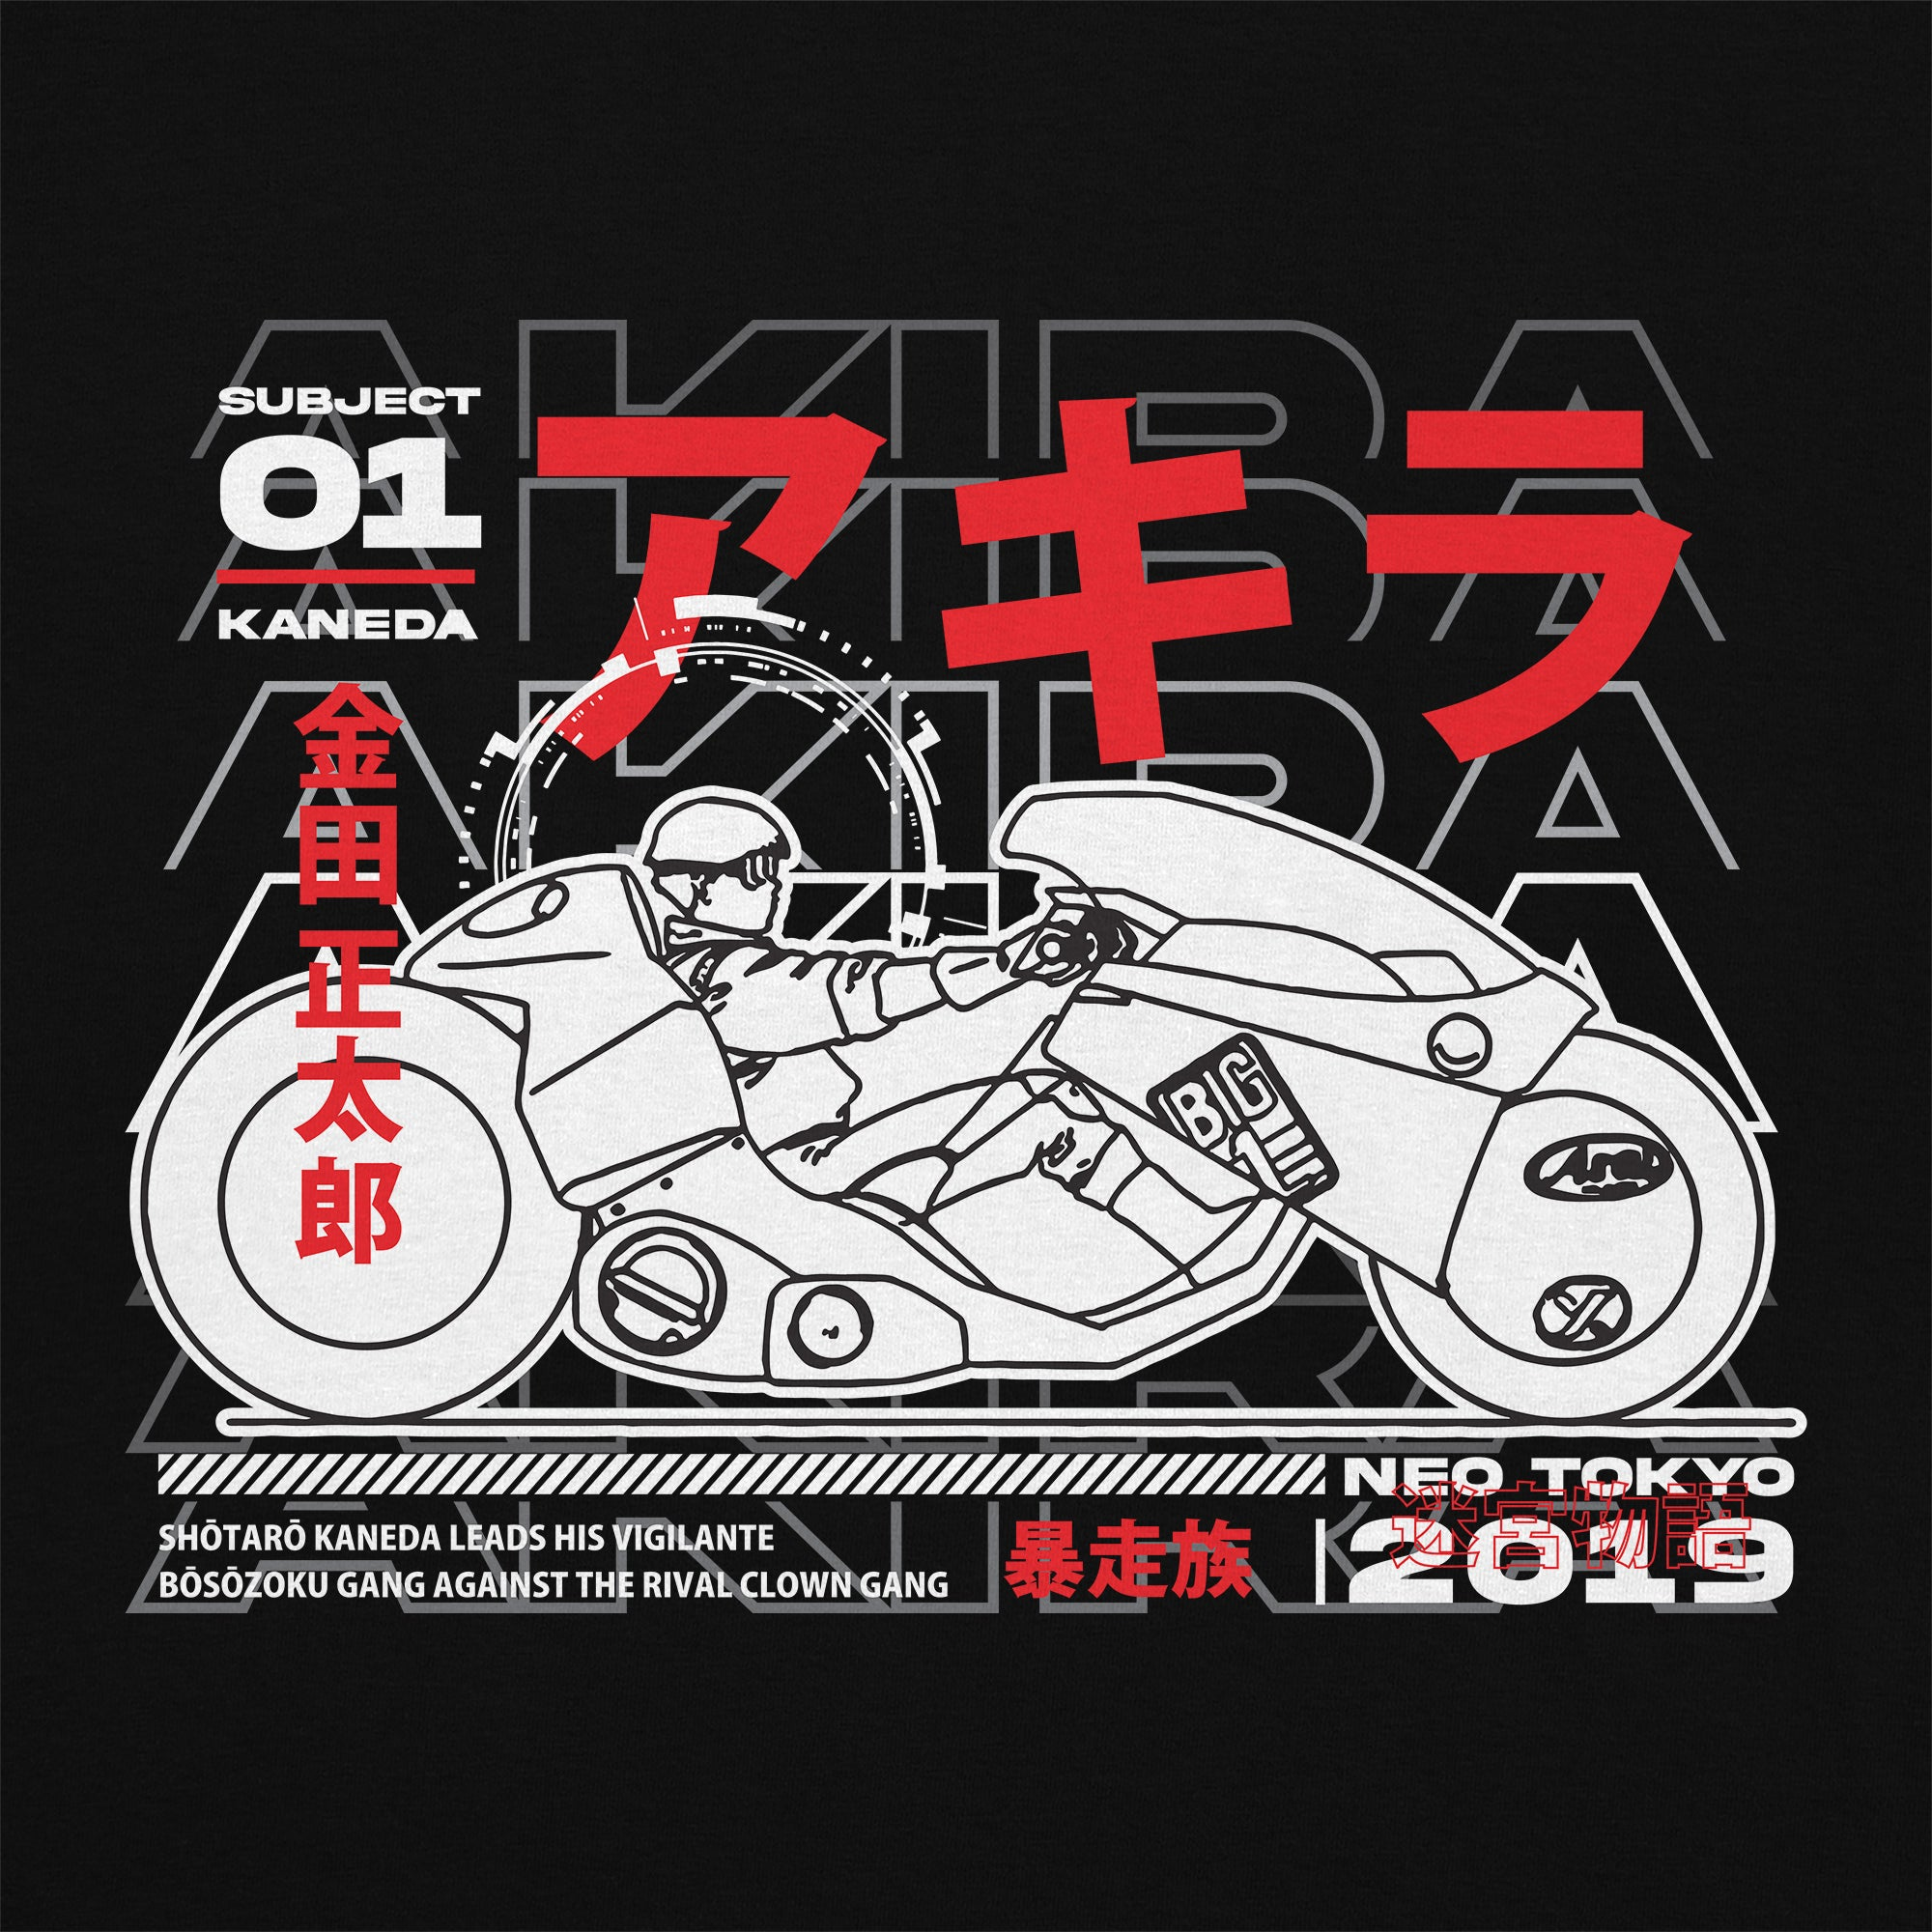 Subject 01 Kaneda T-Shirt